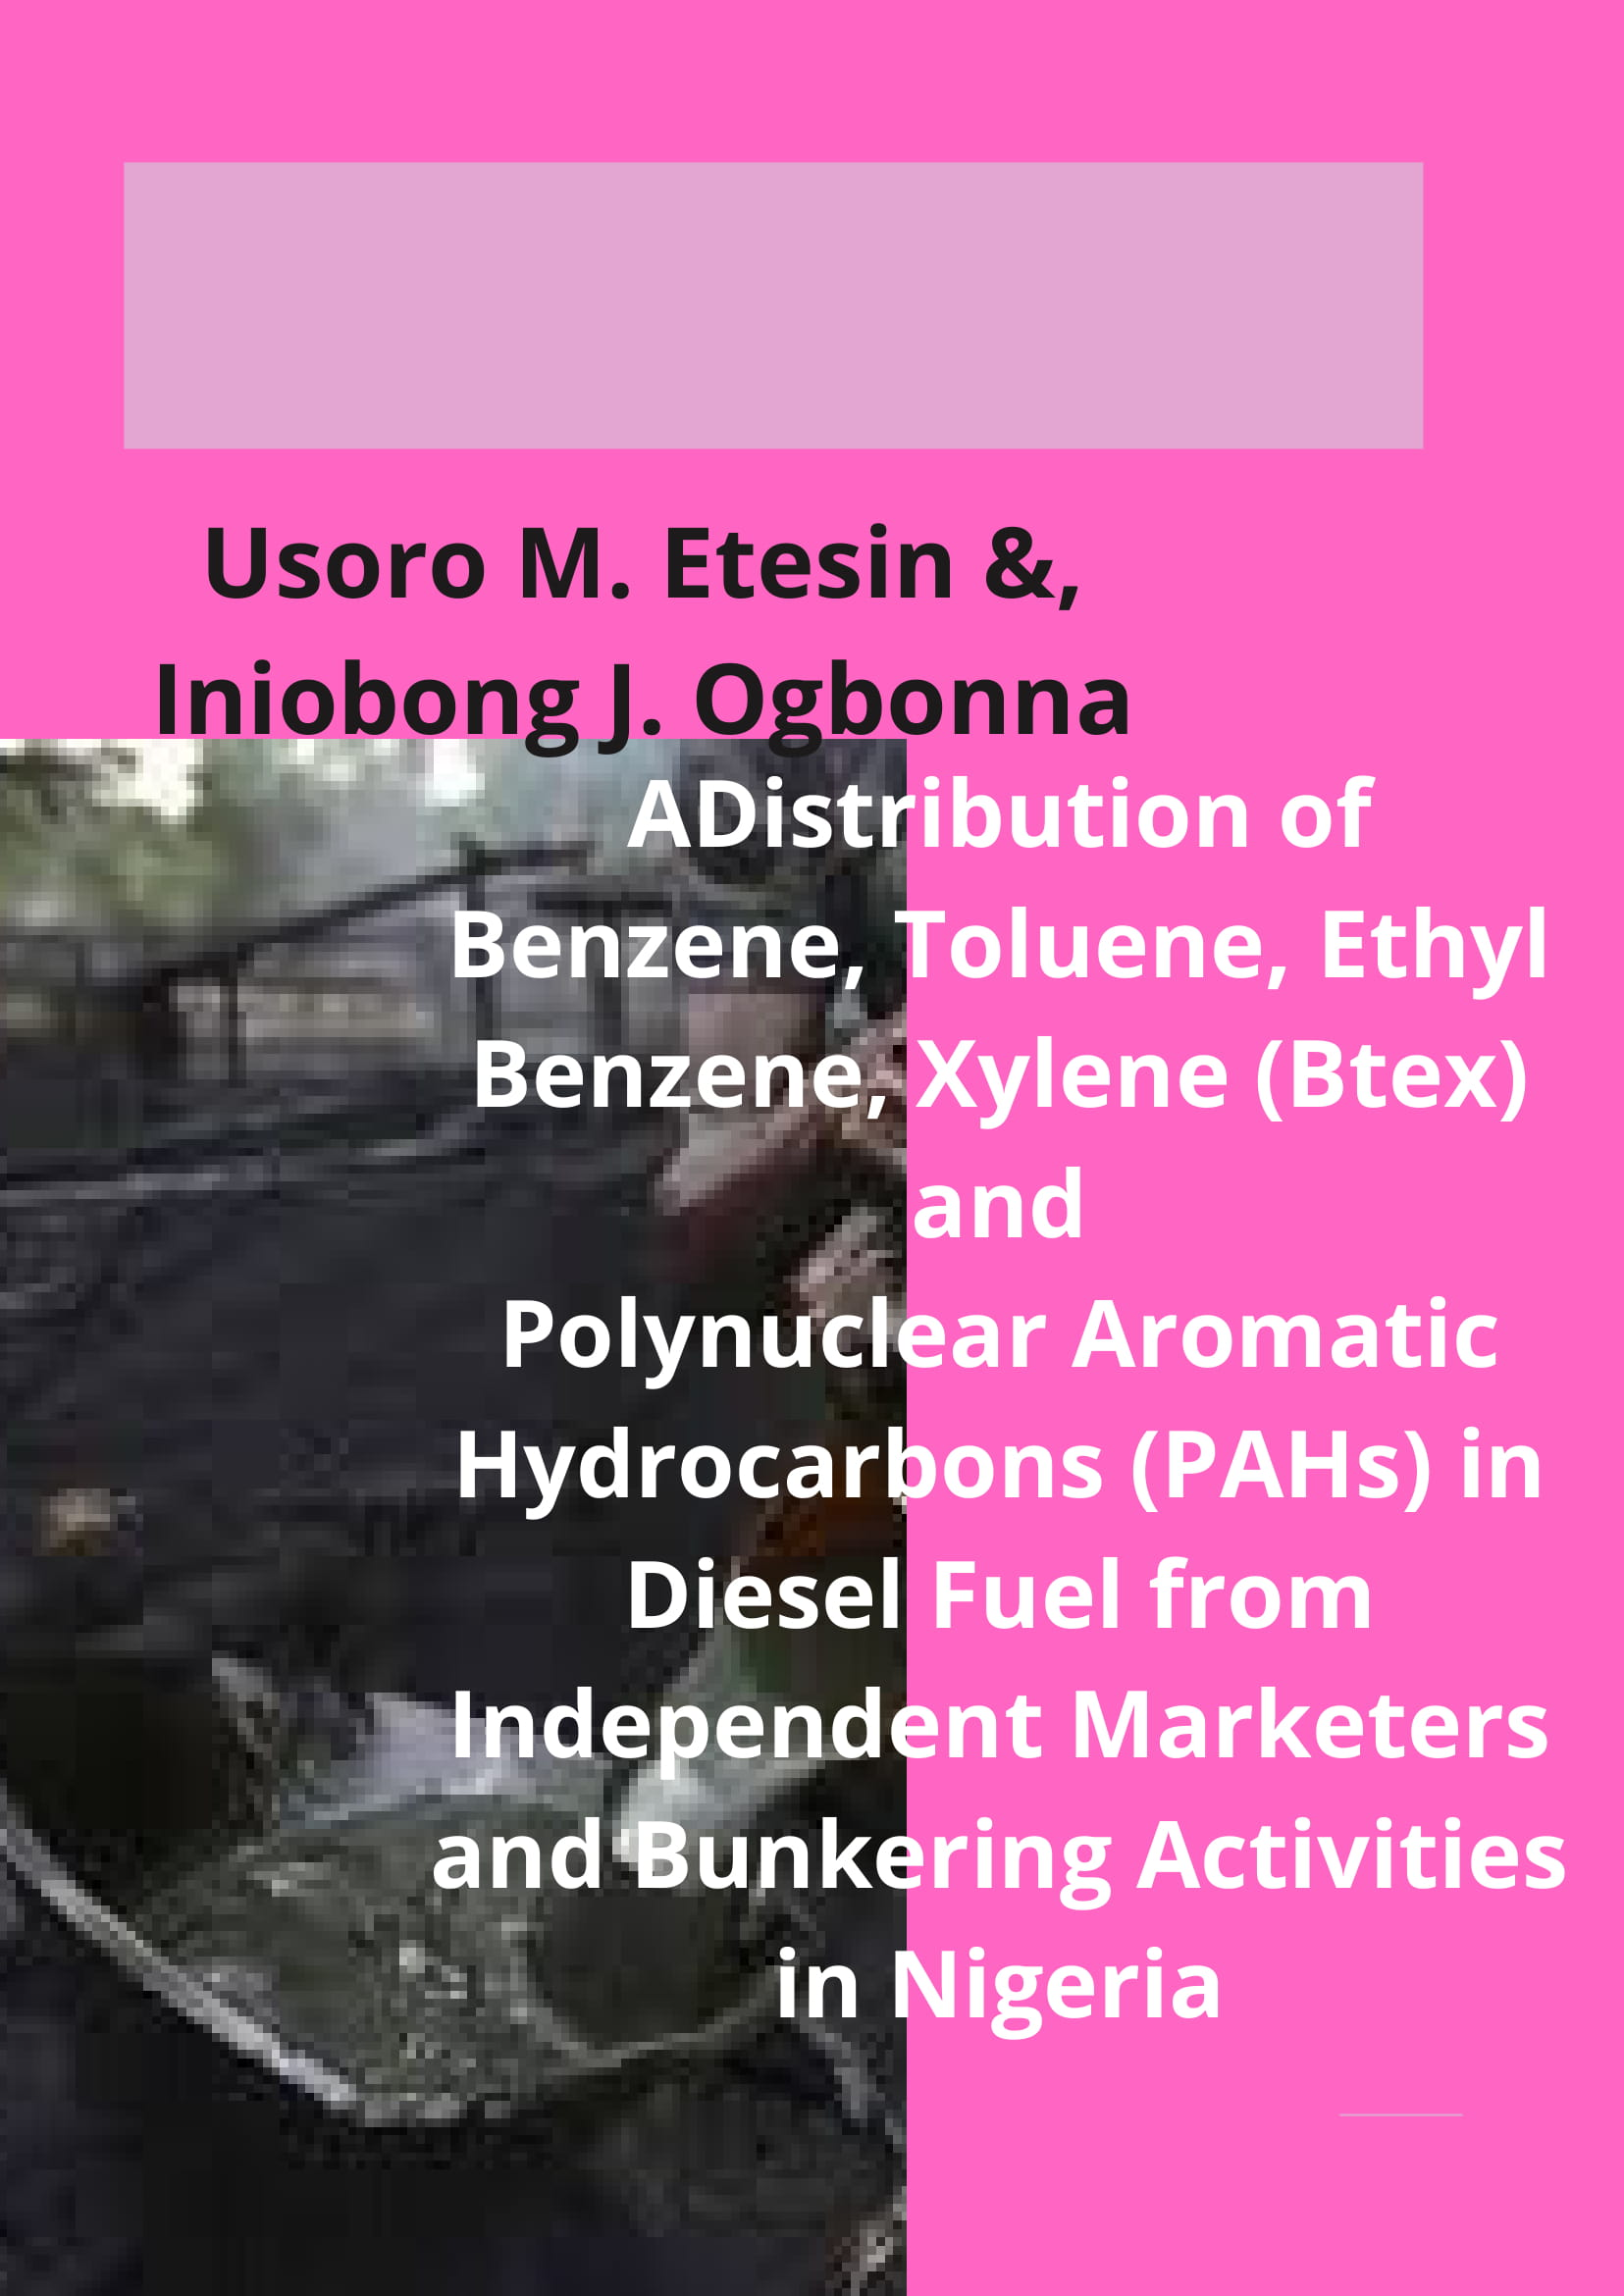 Distribution of Benzene, Toluene, Ethyl Benzene, Xylene (Btex) and Polynuclear Aromatic Hydrocarbons (PAHs) in Diesel Fuel from Independent Marketers and Bunkering Activities in Nigeria image